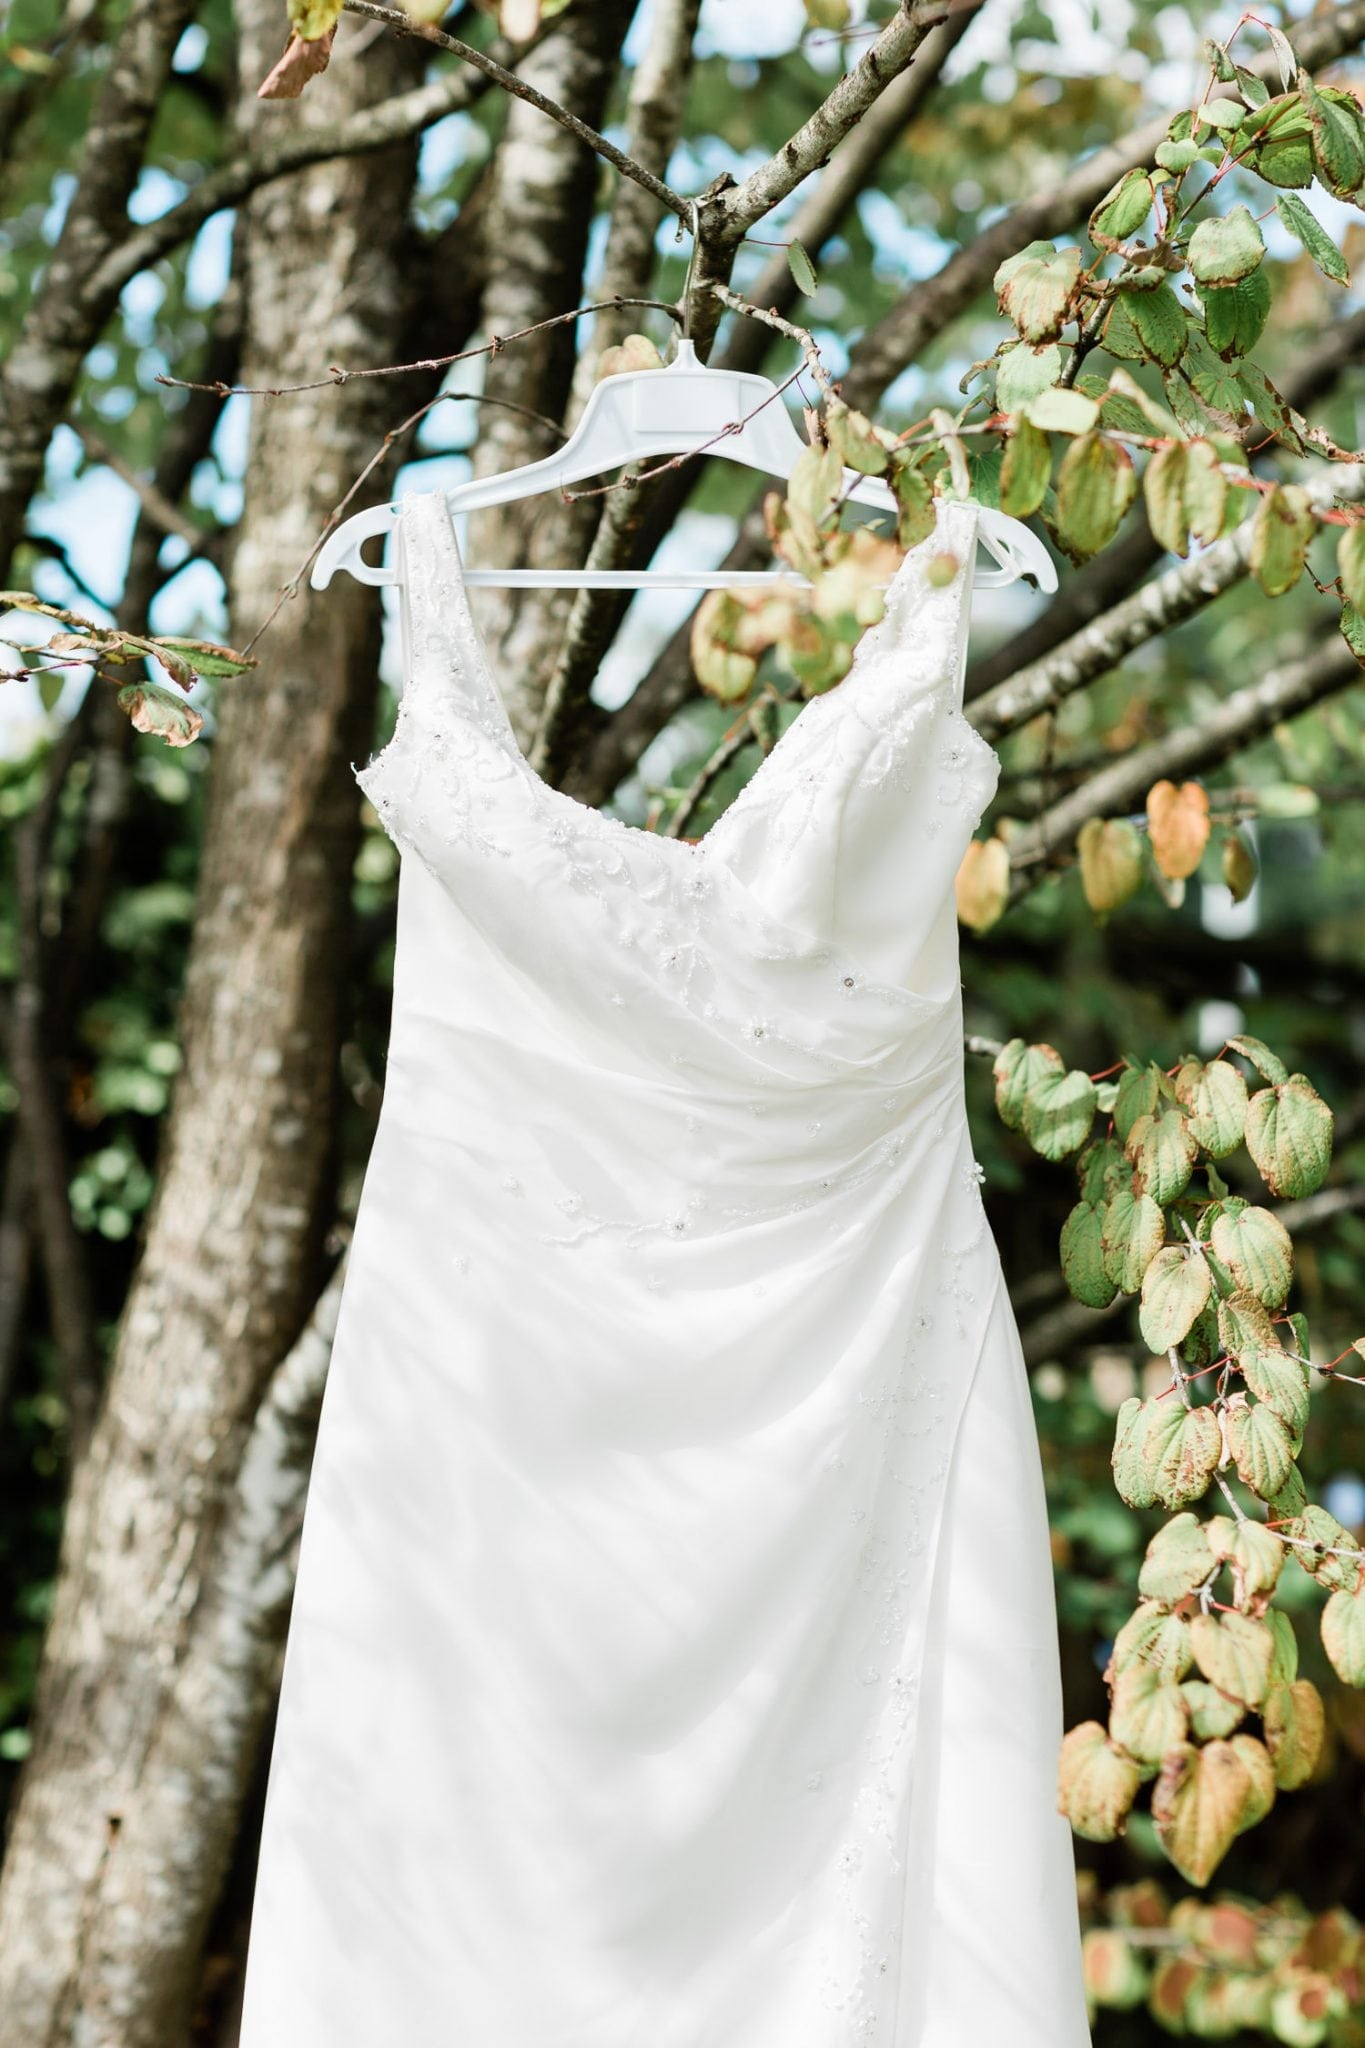 Wedding dress hanging on the treeLittle boy getting ready for a wedding | Vancouver wedding photographer